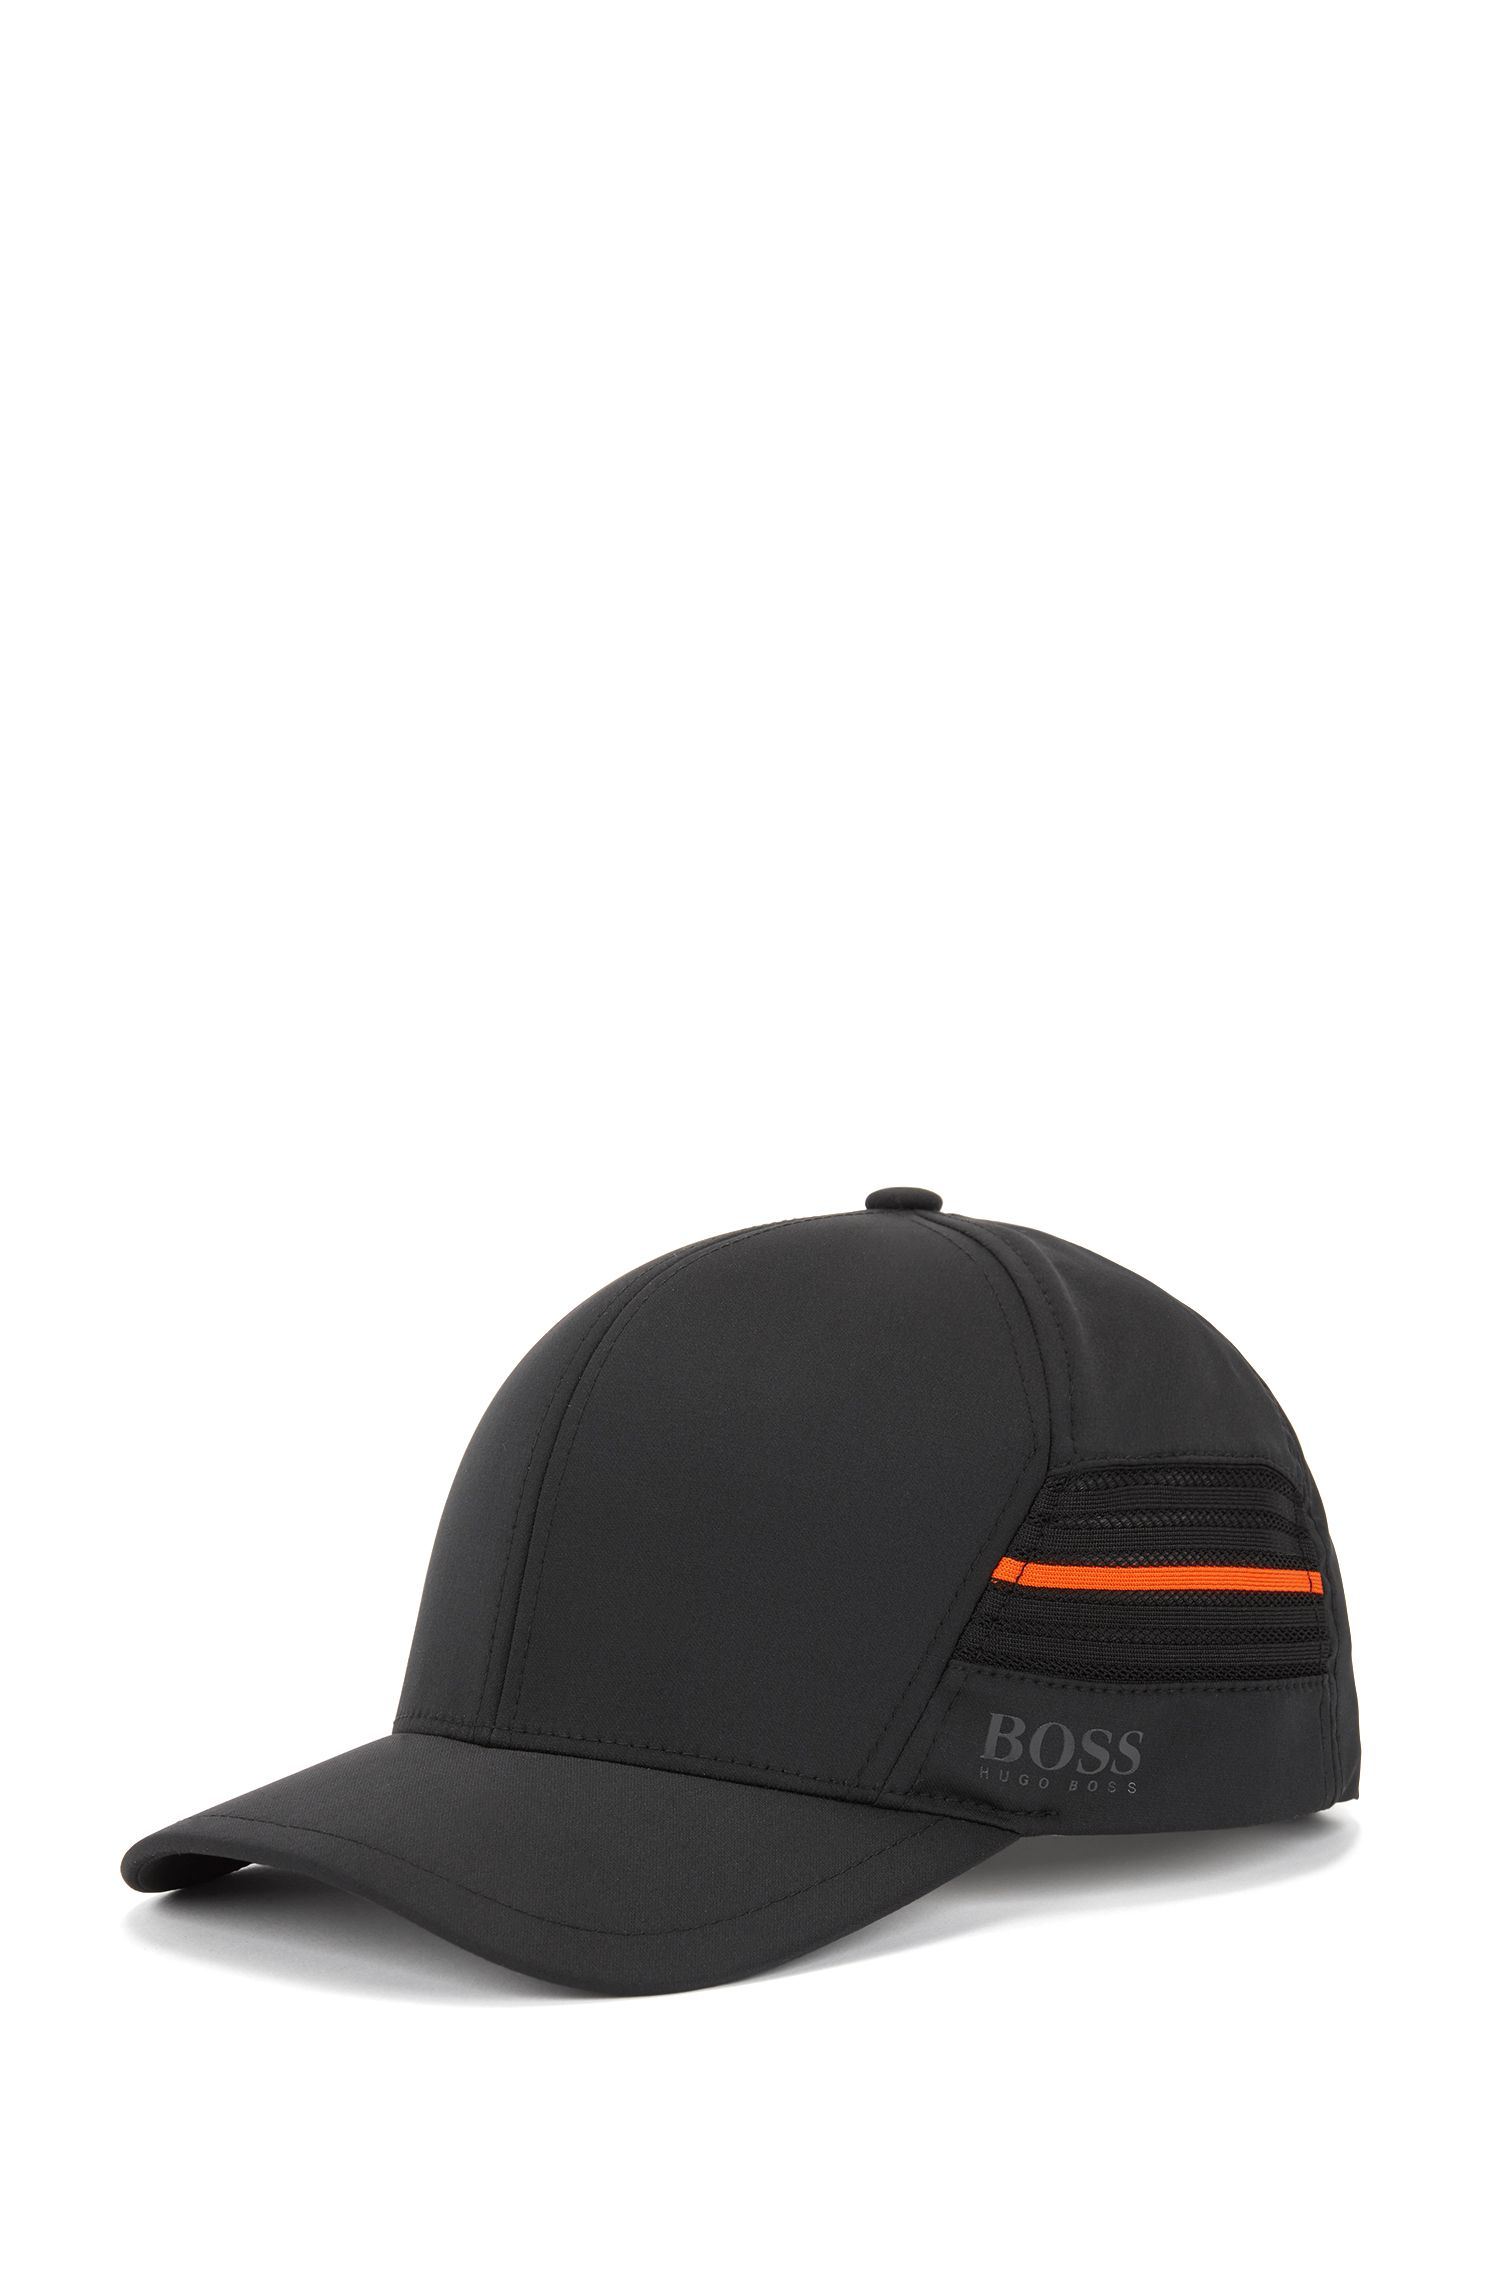 Casquette imperméable en twill stretch micro-structuré